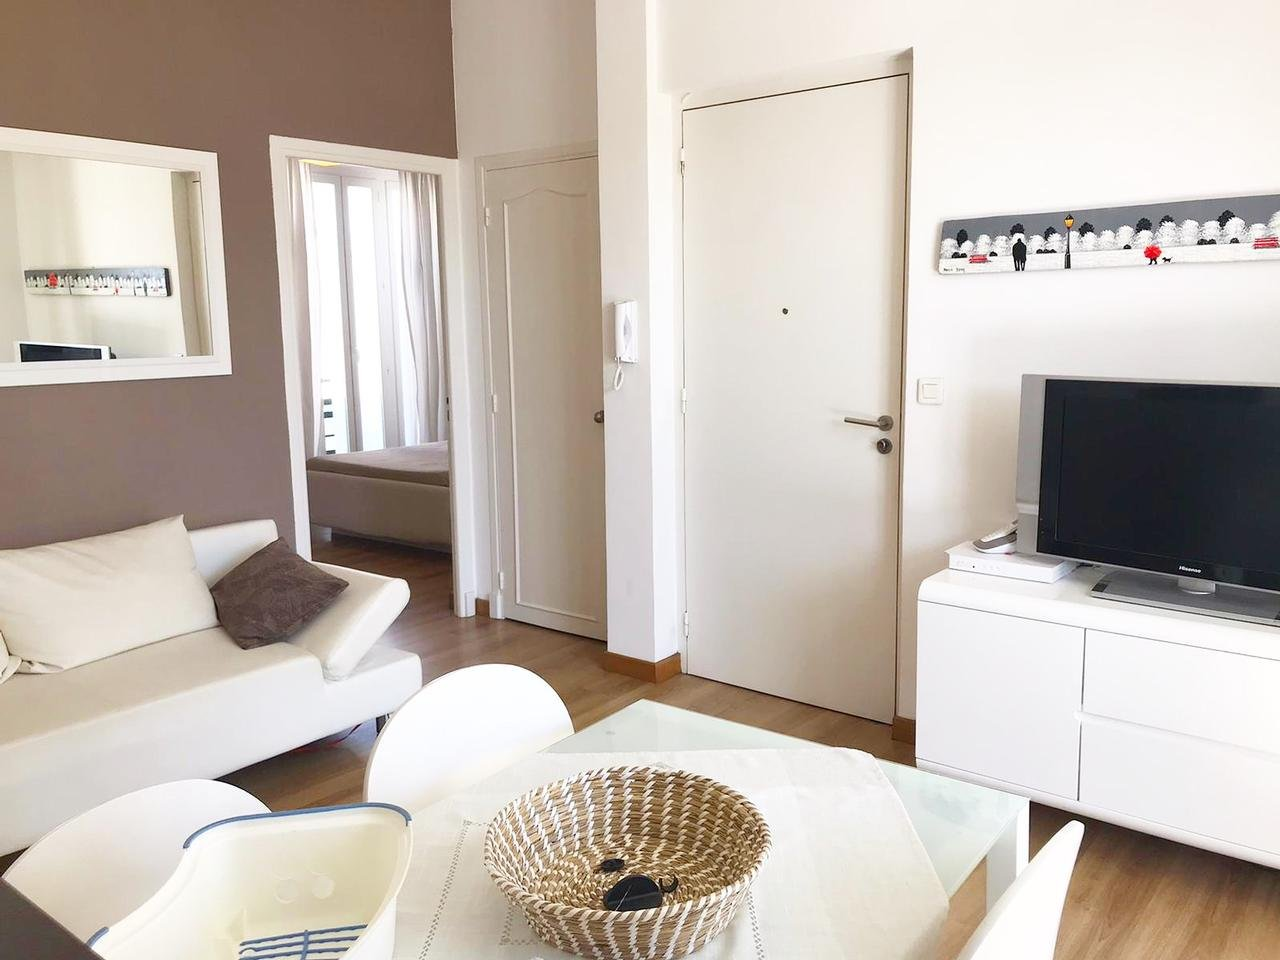 Appartement  2 Rooms 35m2  for sale   450000 €